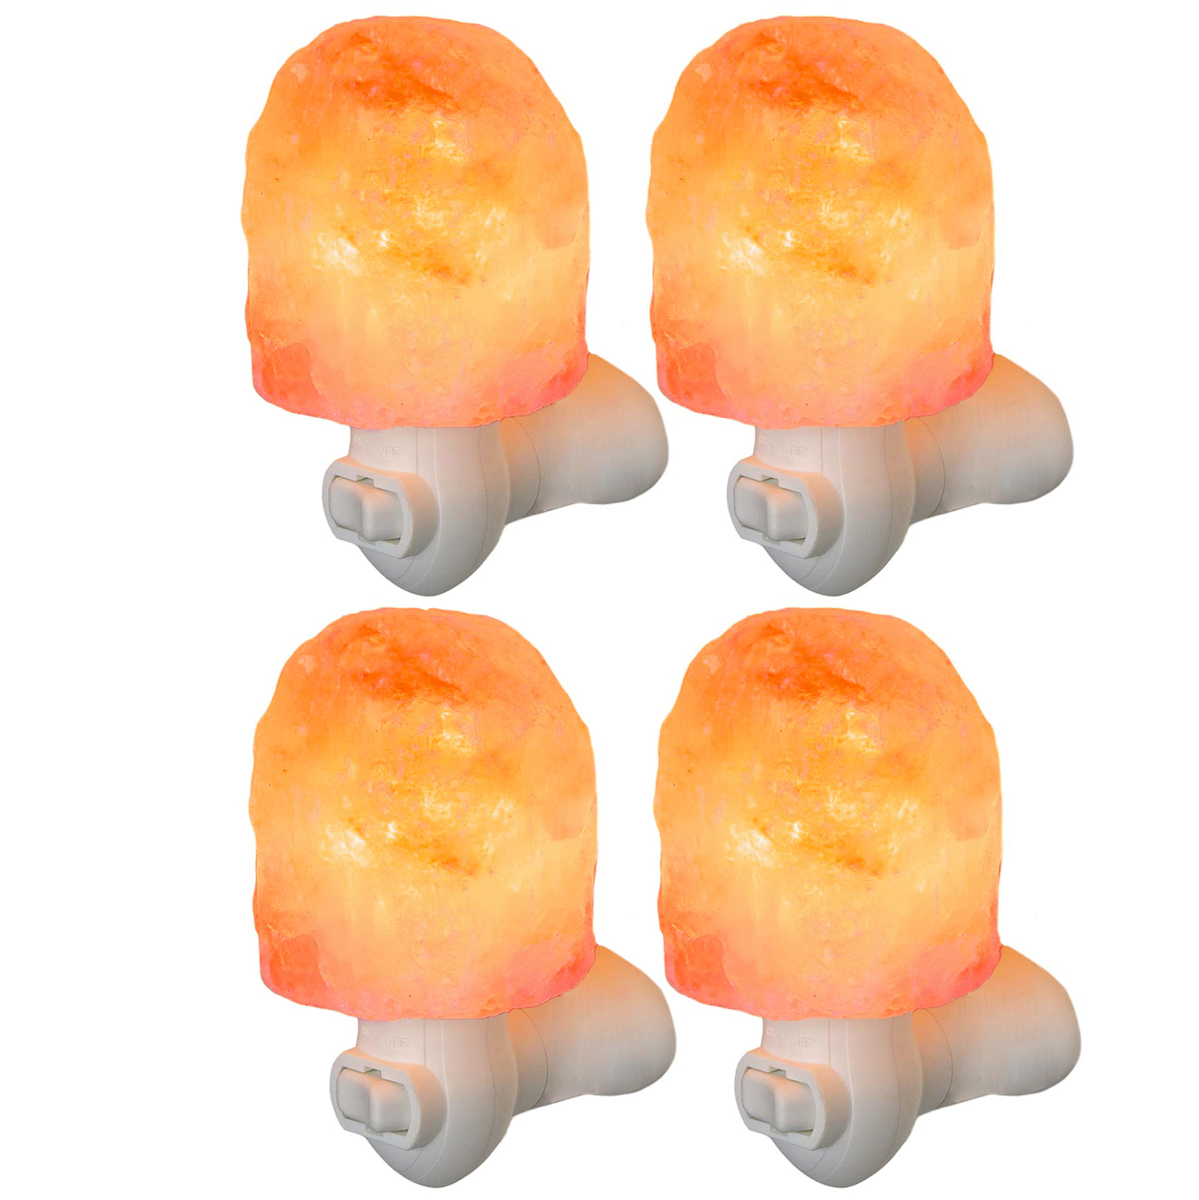 Simply Genius Himalayan Salt Lamp Night Light, Natural Crystal Wall Light With Bulb & Cord, Air Purifier Wall Plug, Bedroom Decoration and Lighting Adult and Kids Night Light Bulbs 7 Watts